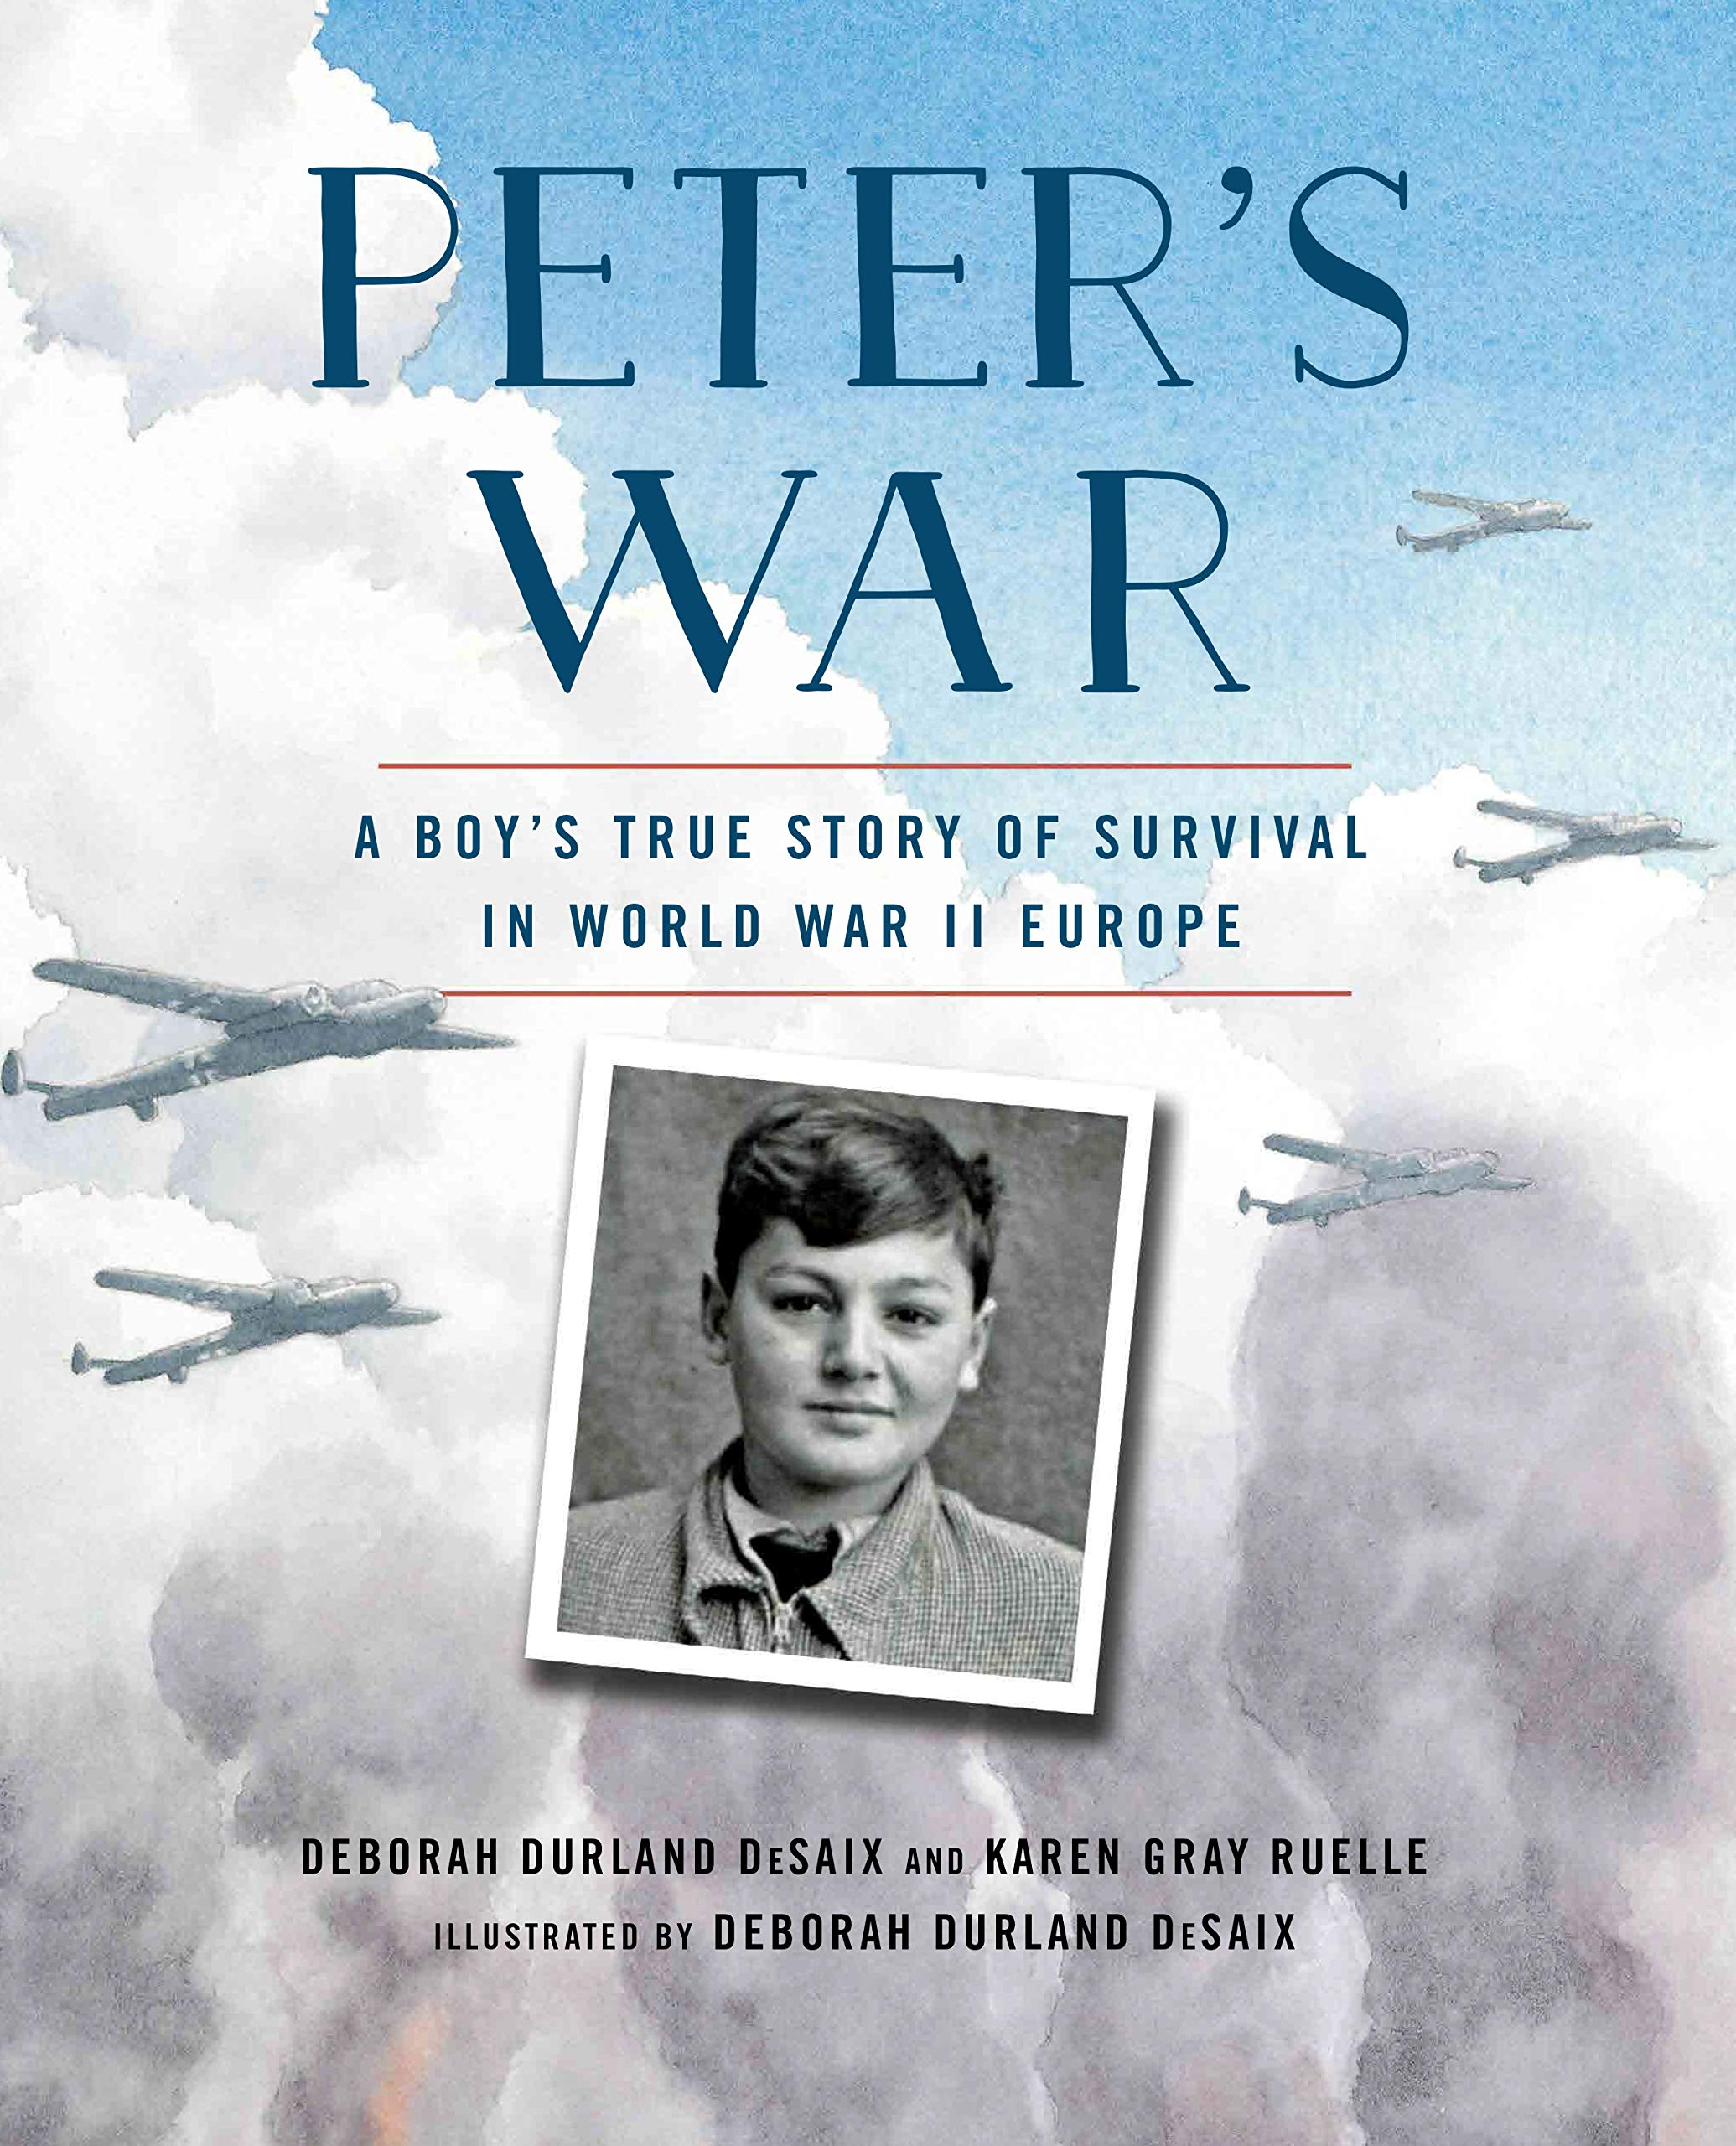 Peter's War: A Boy's True Story of Survival in World War II Europe: Ruelle,  Karen Gray, Durland DeSaix, Deborah: 9780823424160: Amazon.com: Books